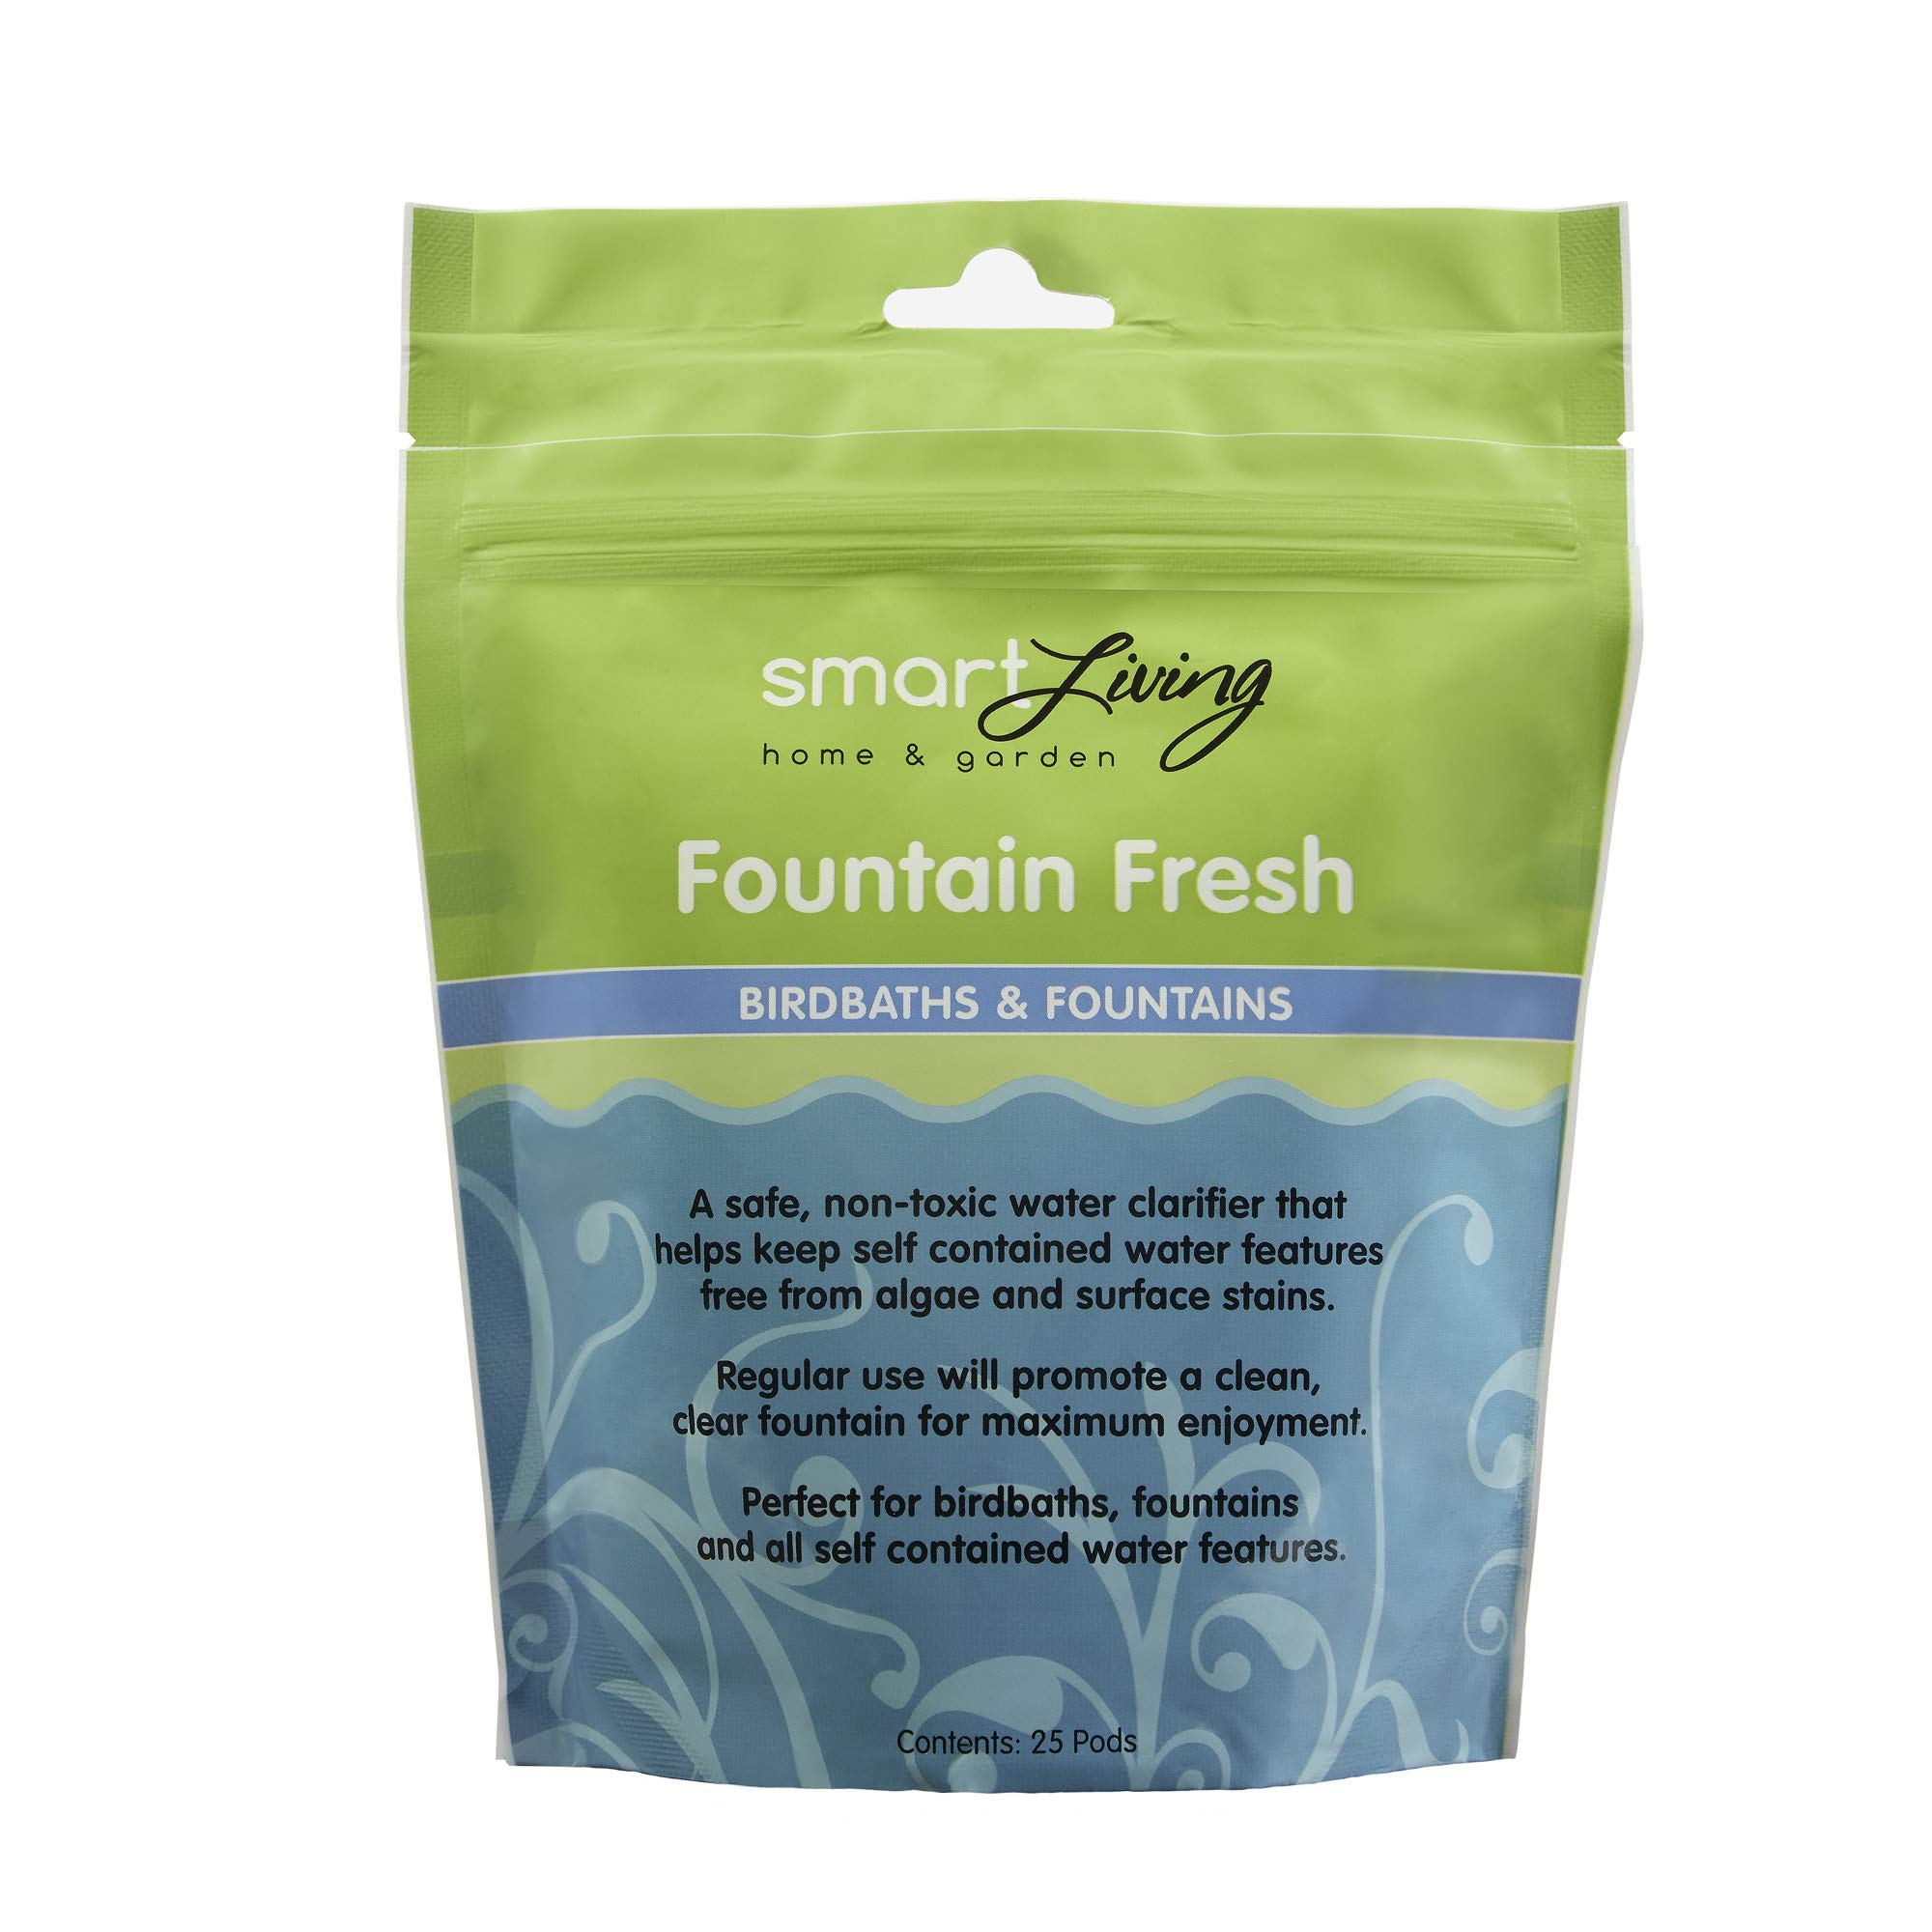 Smart Solar 80910R01 Fountain Fresh Pond Treatment, Safe And Non-Toxic Water Clarifier Perfect For Use in Fountains, Waterfalls And Self-Contained Water Features by STI Group